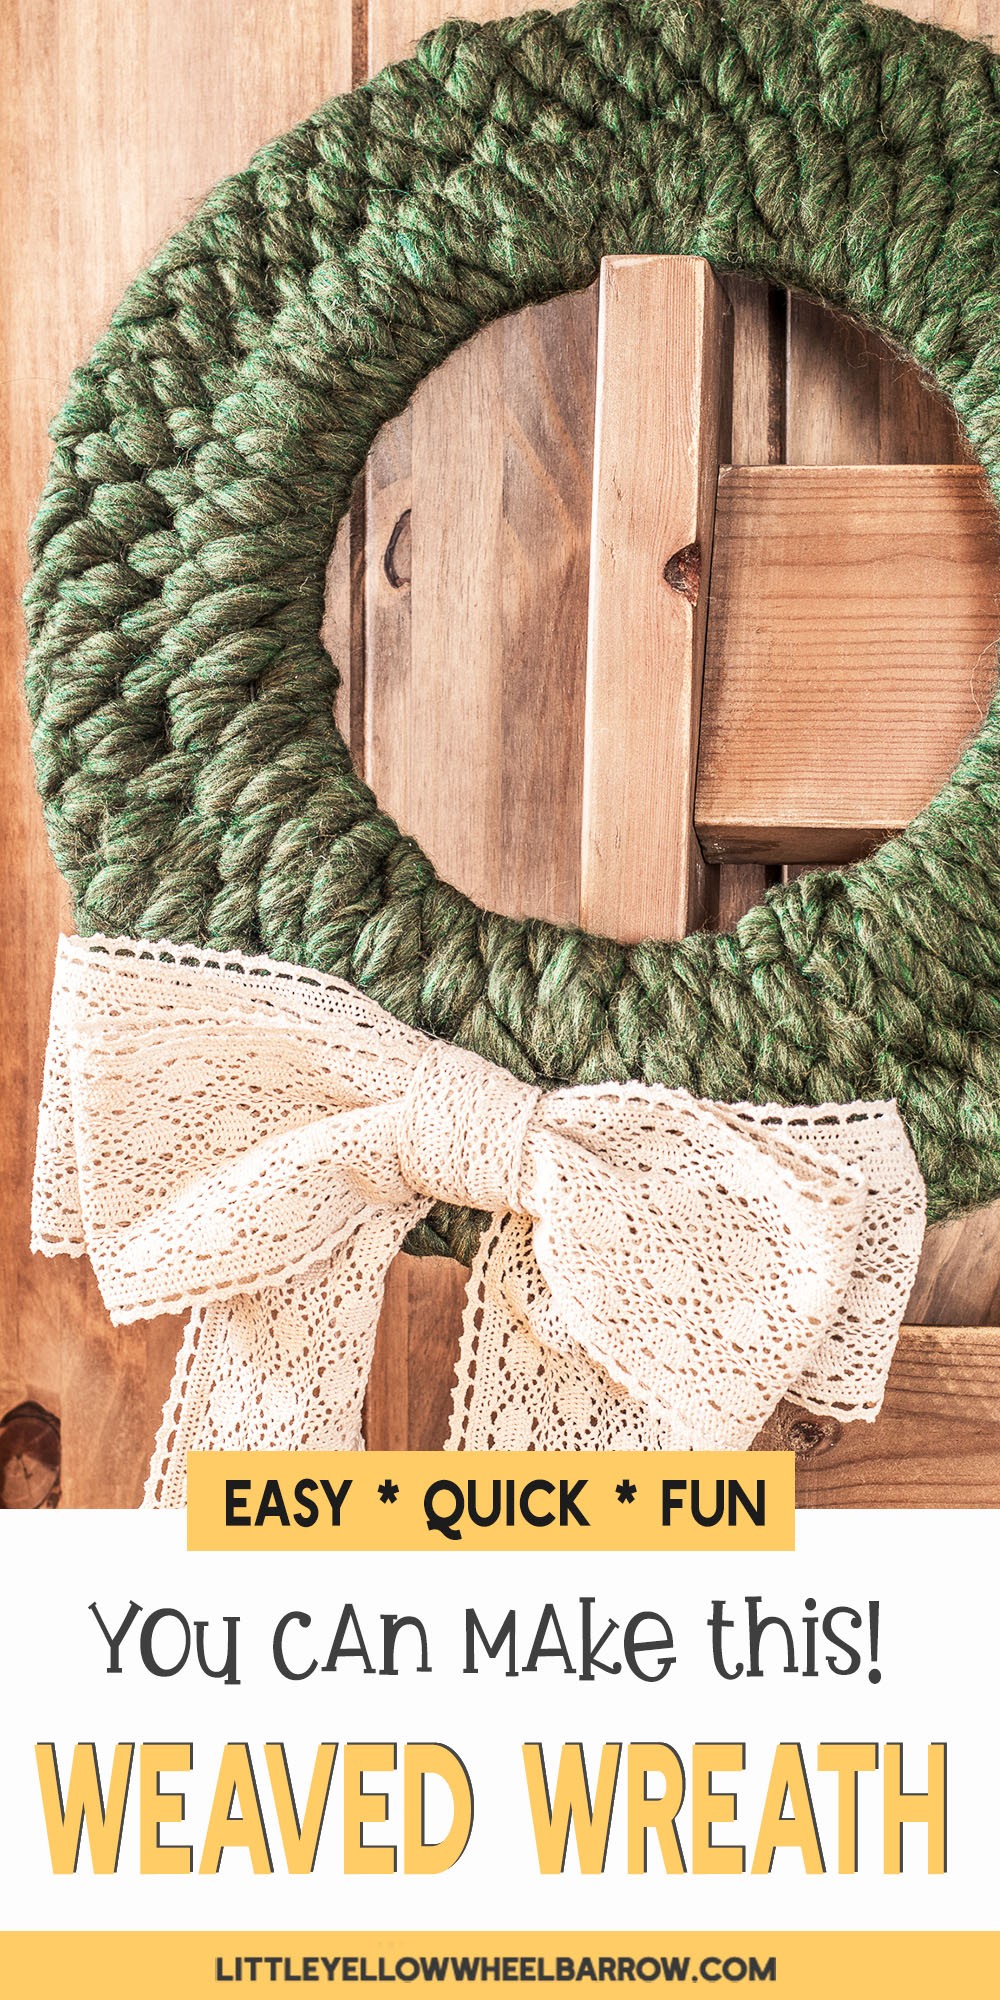 A simple weaved wreath perfect for the holidays. This easy holiday crafting project is the perfect addition to your farmhouse style decorations and adds a touch of homemade flair. This simple step by step tutorial will show you how to create the wreath form and the simple steps to weave the entire project in under 90 minutes.